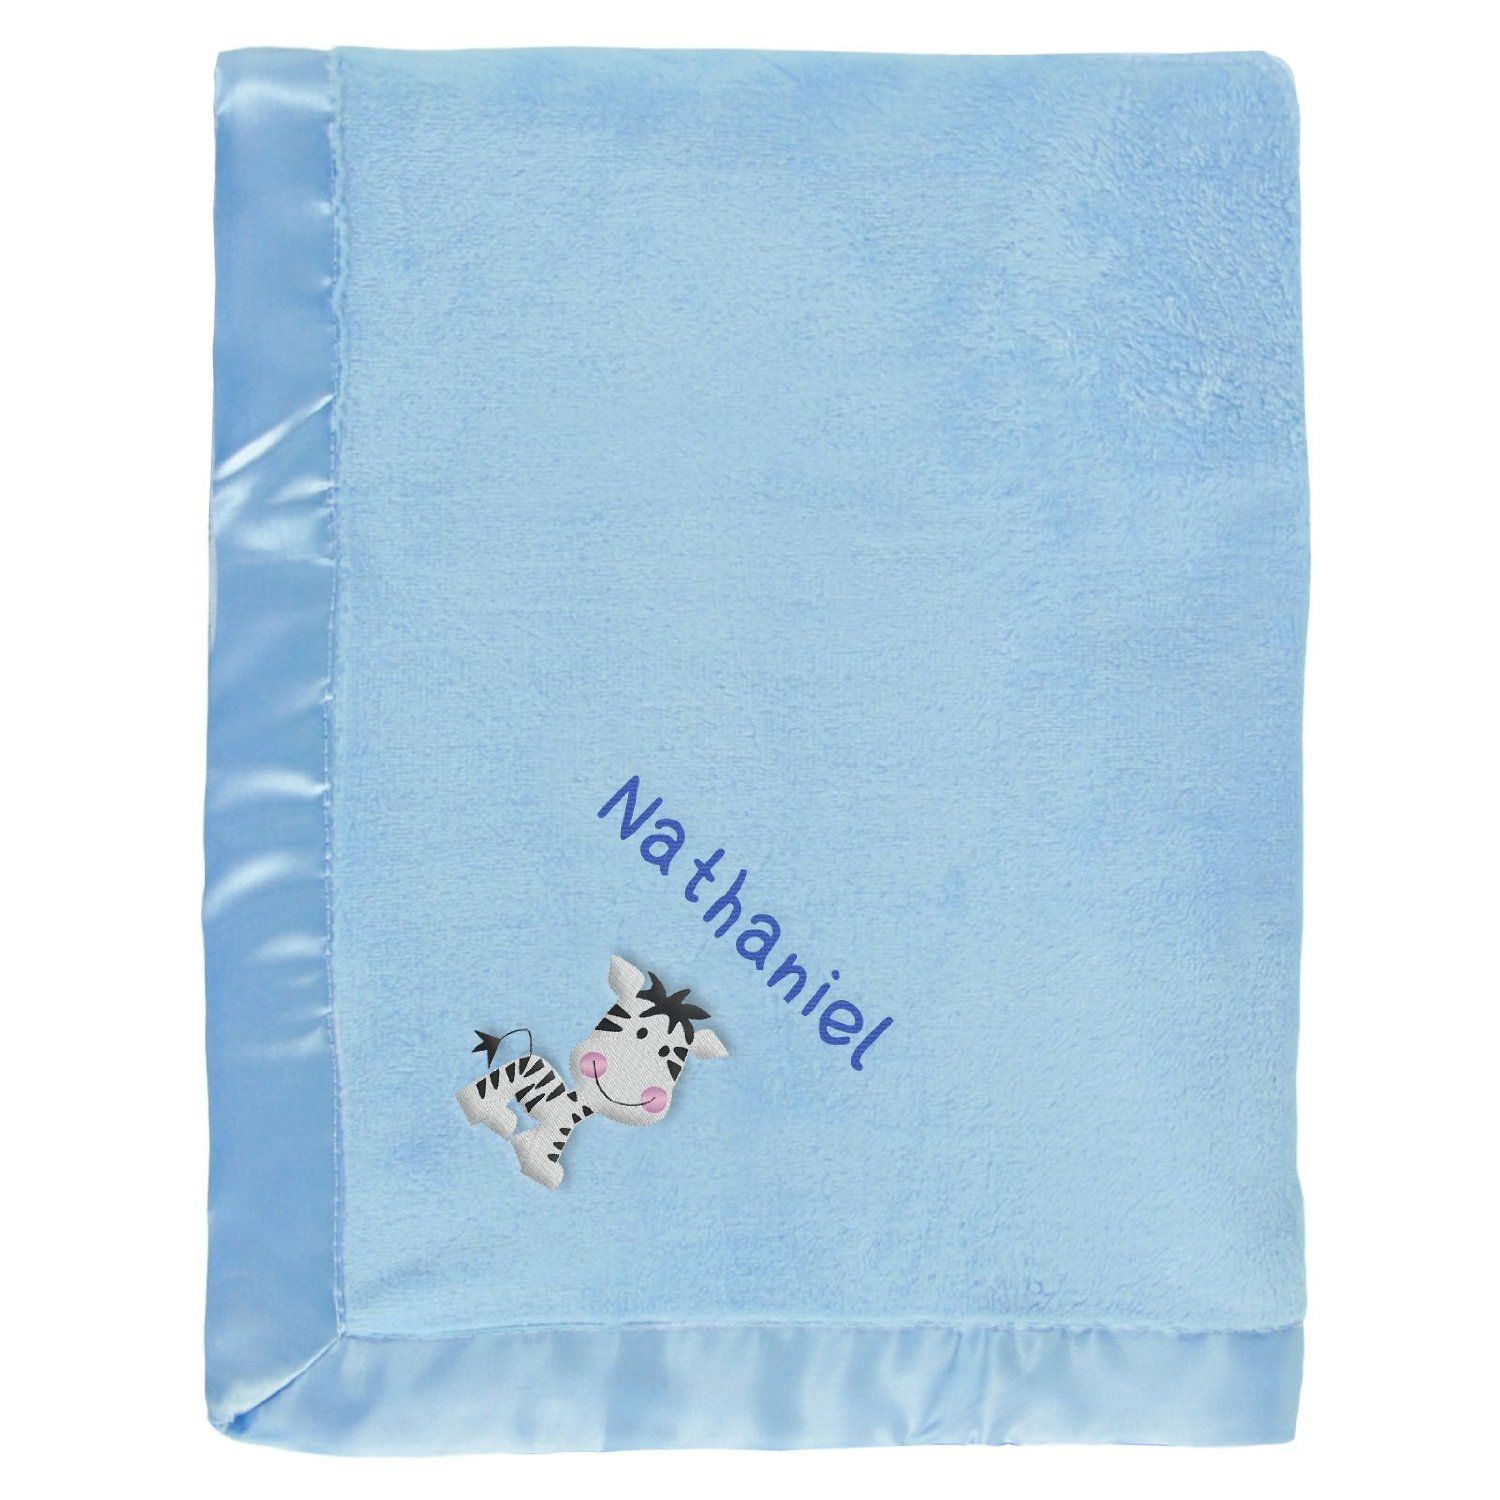 #Nathaniel baby boy blanket in blue with a little Zebra. The name Nathaniel is personalized with unique embroidery in a custom design, perfect as a newborn #baby shower gift.  https://www.babyblankets.com/use/crib/blue-baby-blanket?utm_source=pinterest&utm_medium=pin&utm_campaign=boy_name